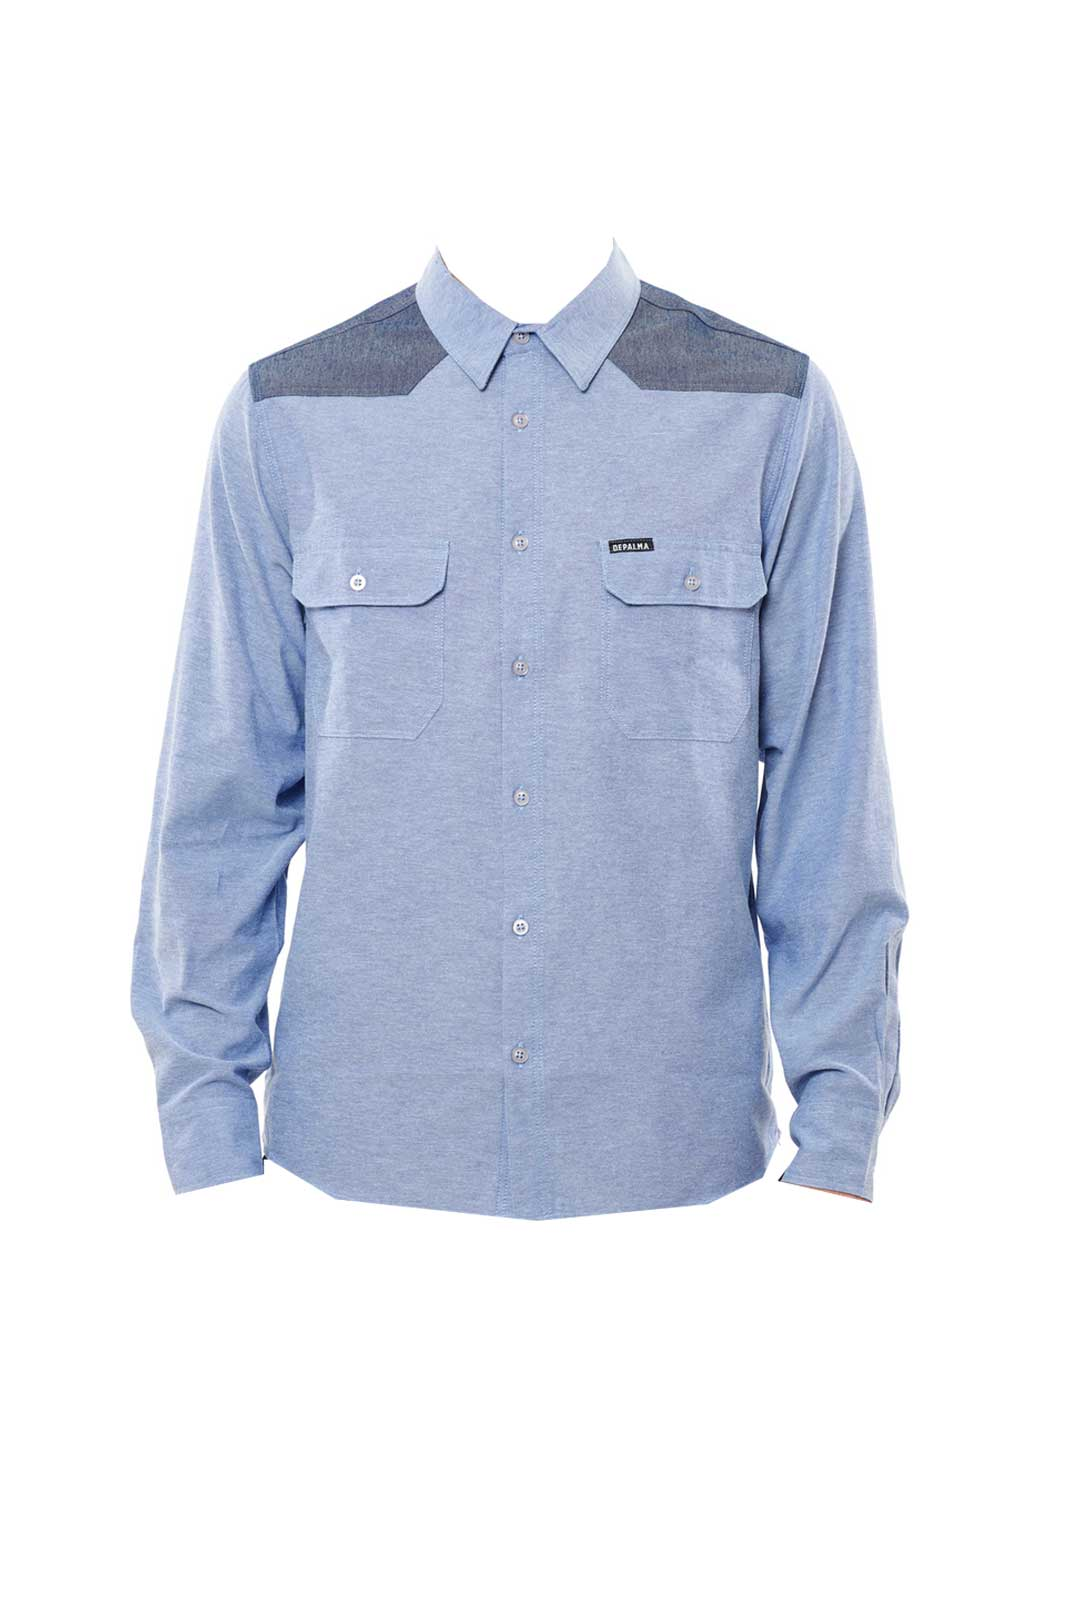 de palma racing the streets shirt blue